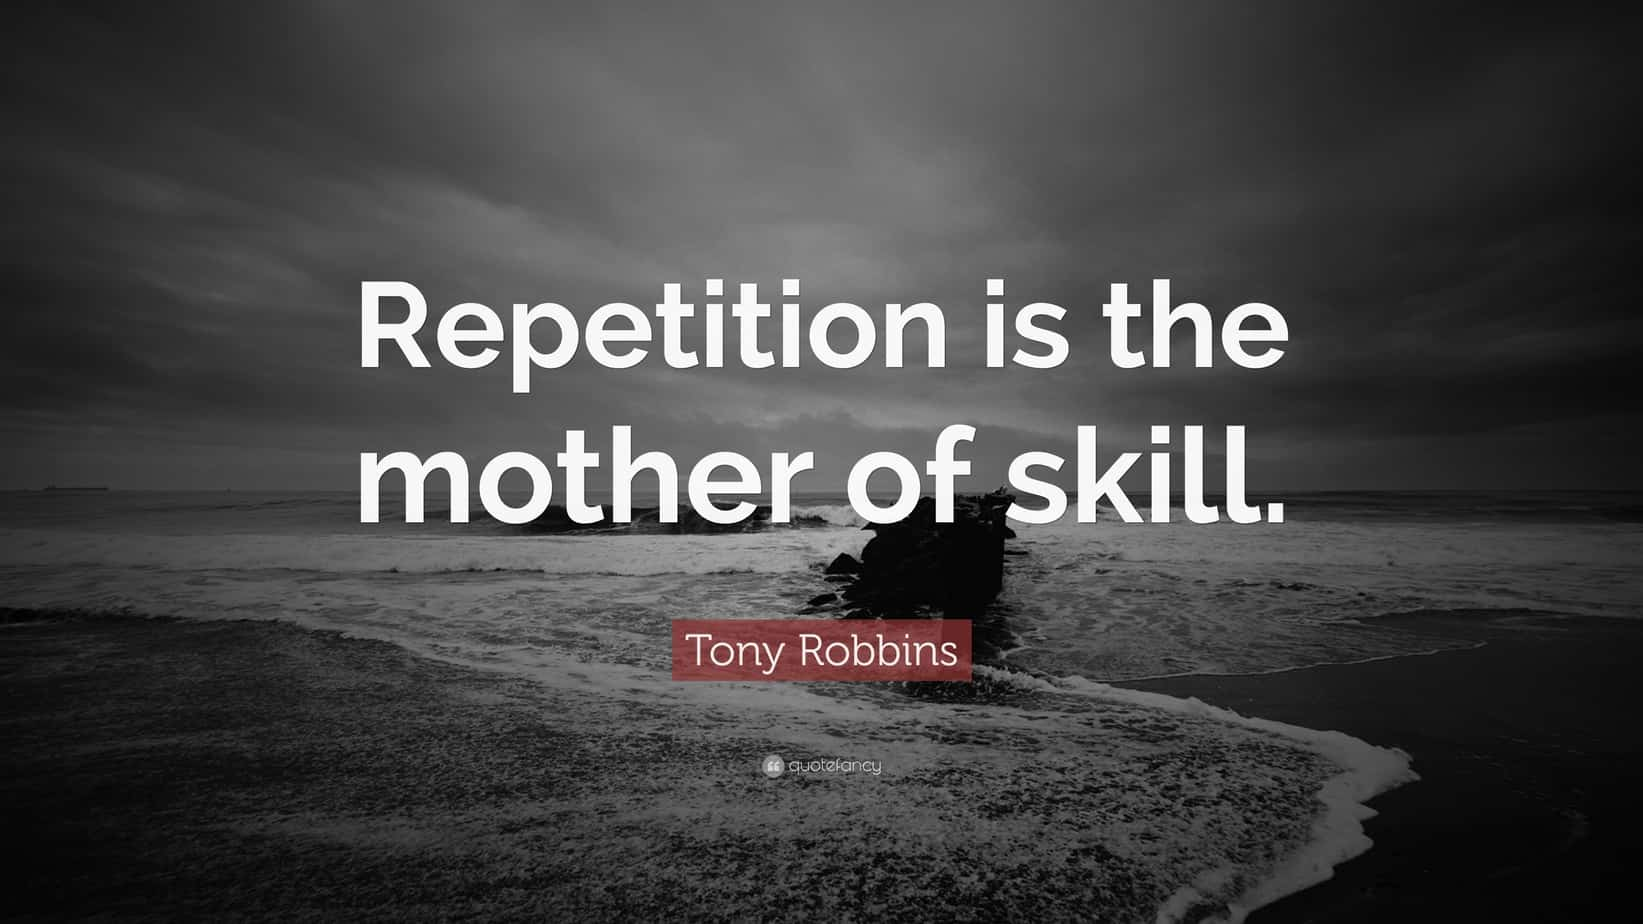 Repetition is the mother of skill